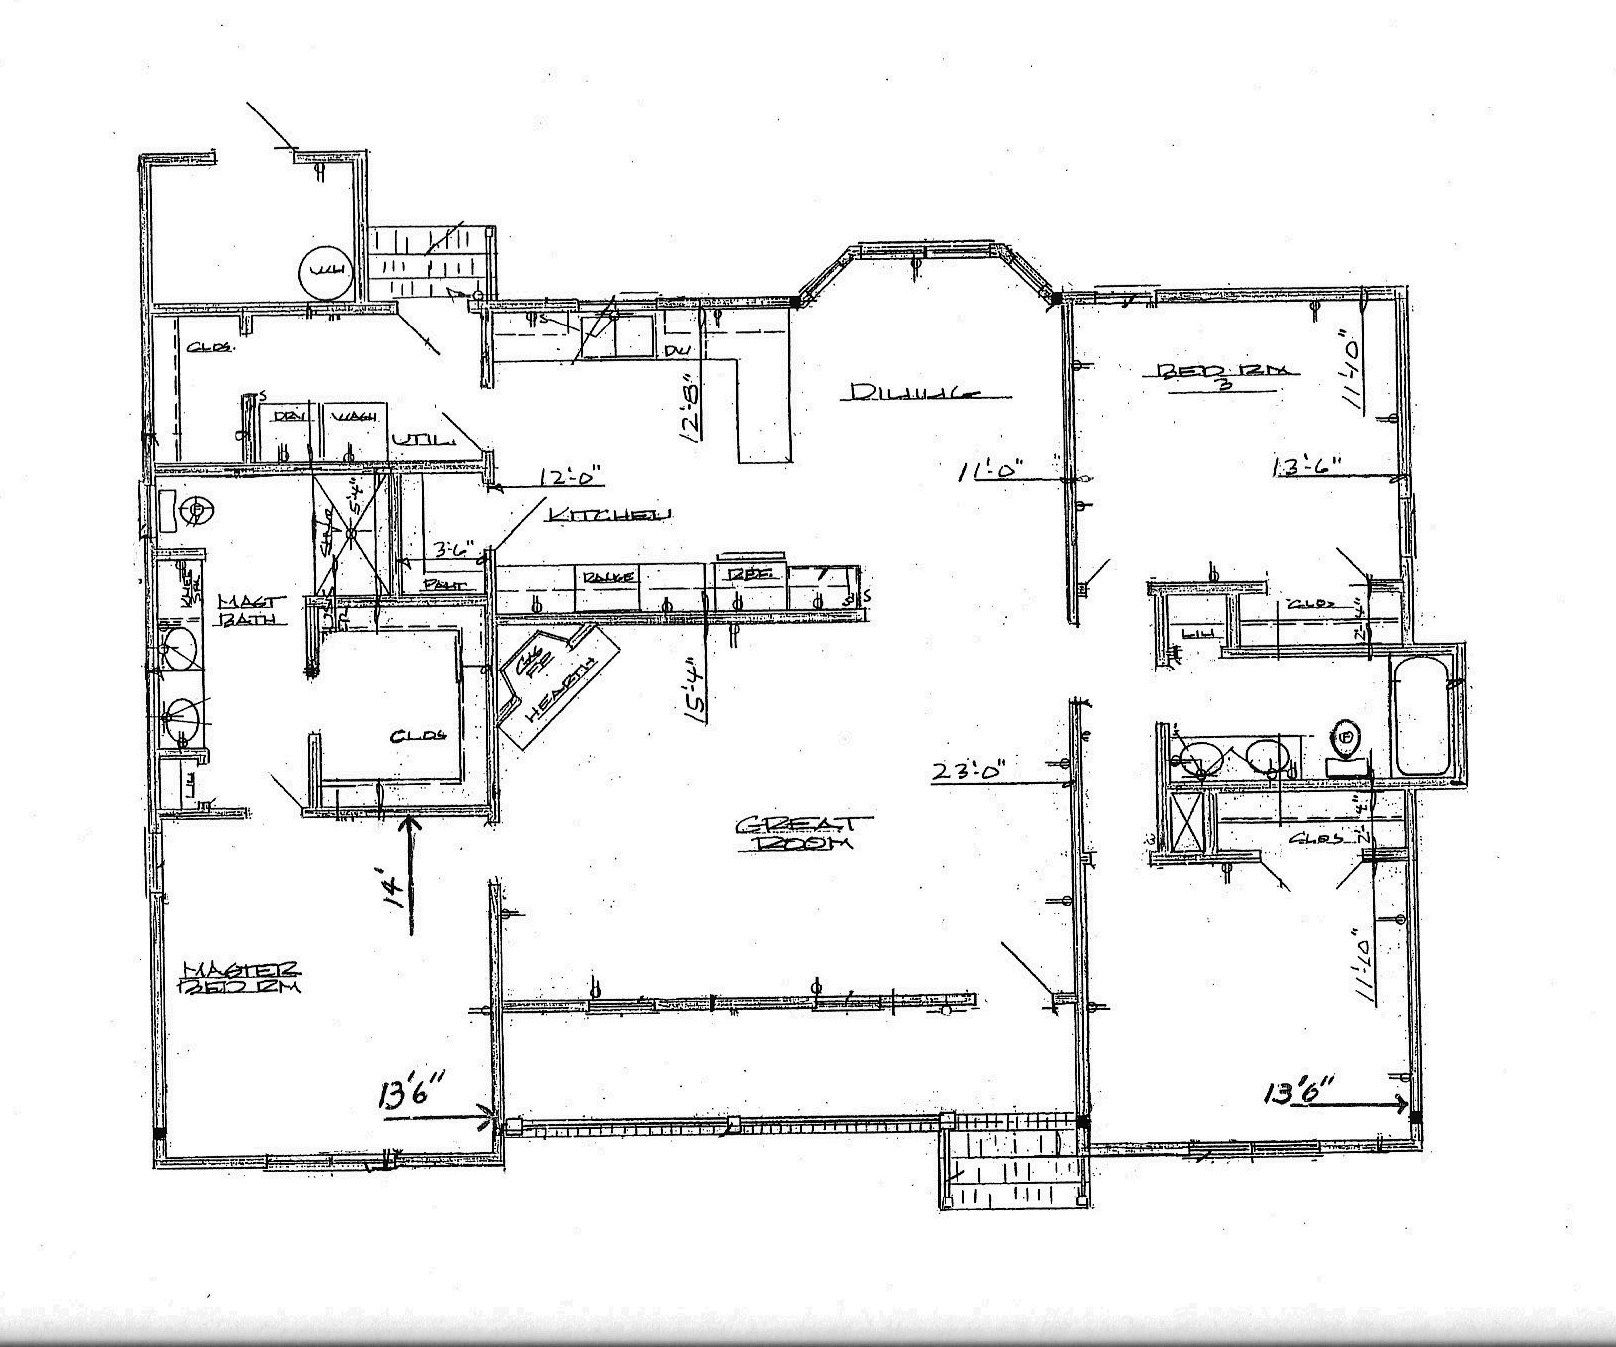 Ranch House Plans Kitchen Lovely Large House Plans Big House Floor Open Ranch Style Floor Plan Ranch Home Floor Plans Ranch Style Floor Plans Floor Plans Ranch